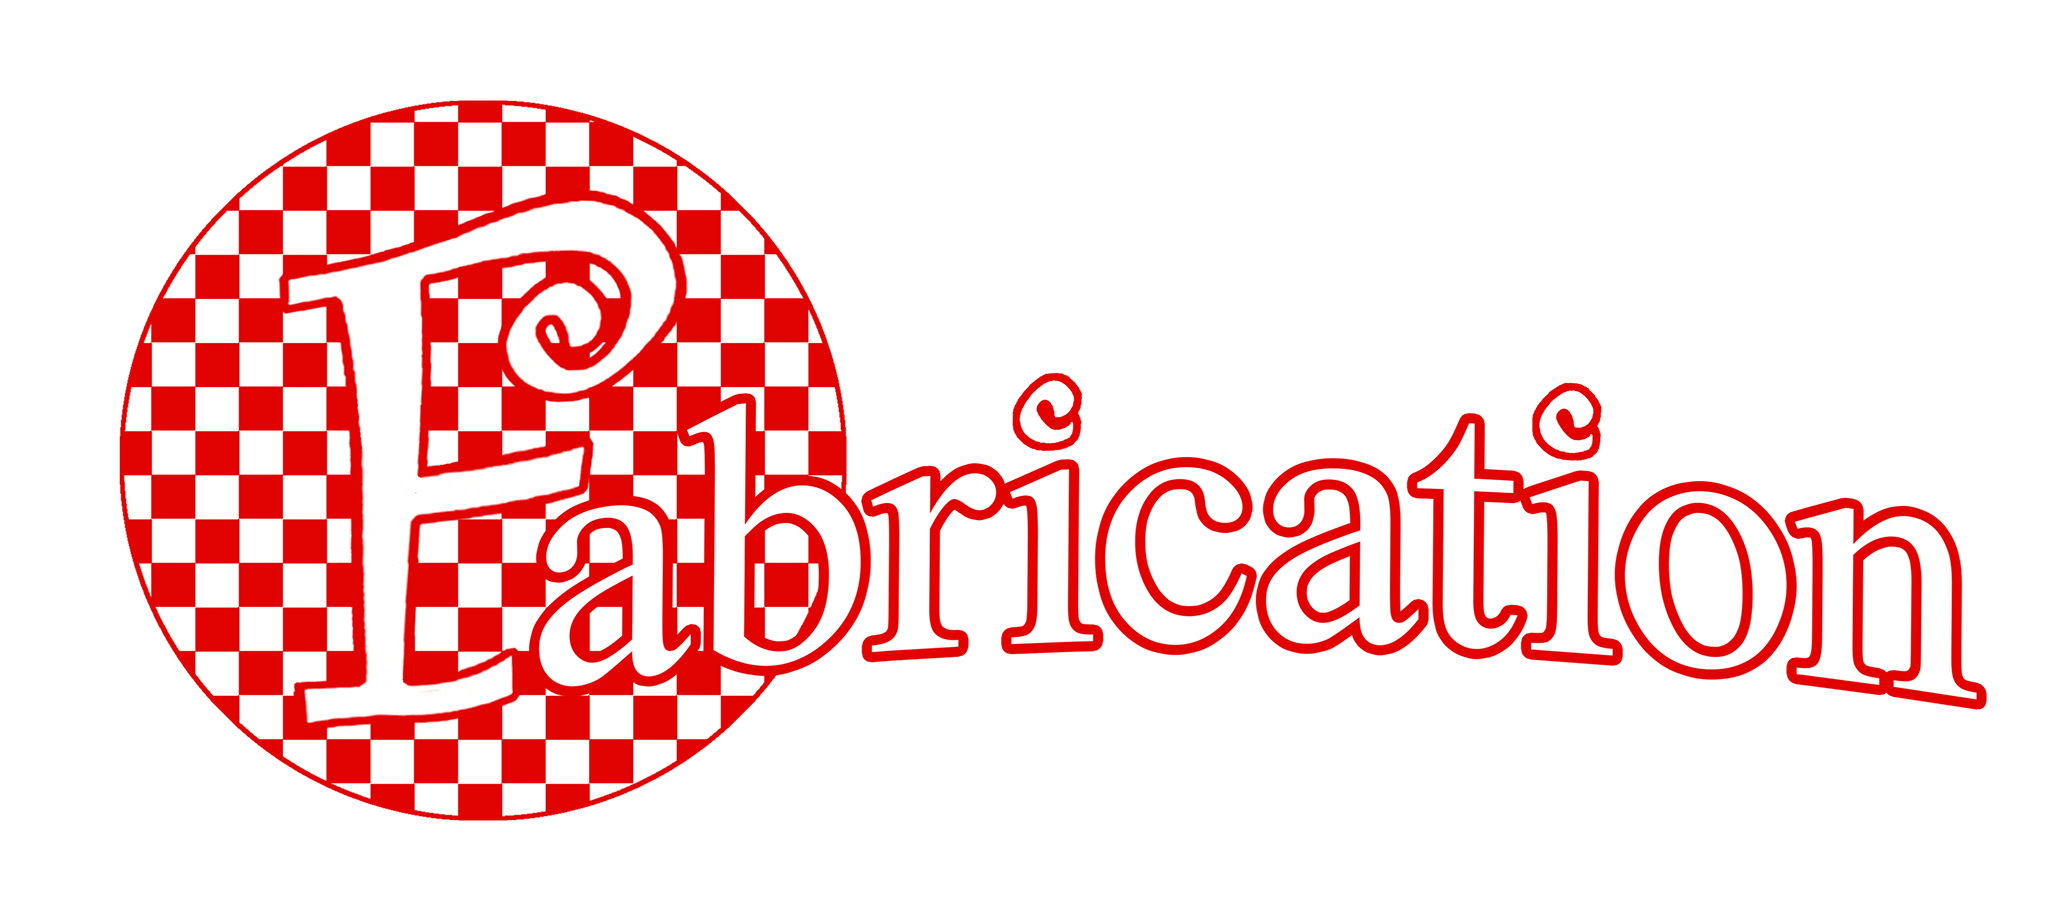 Fabrication Crafts